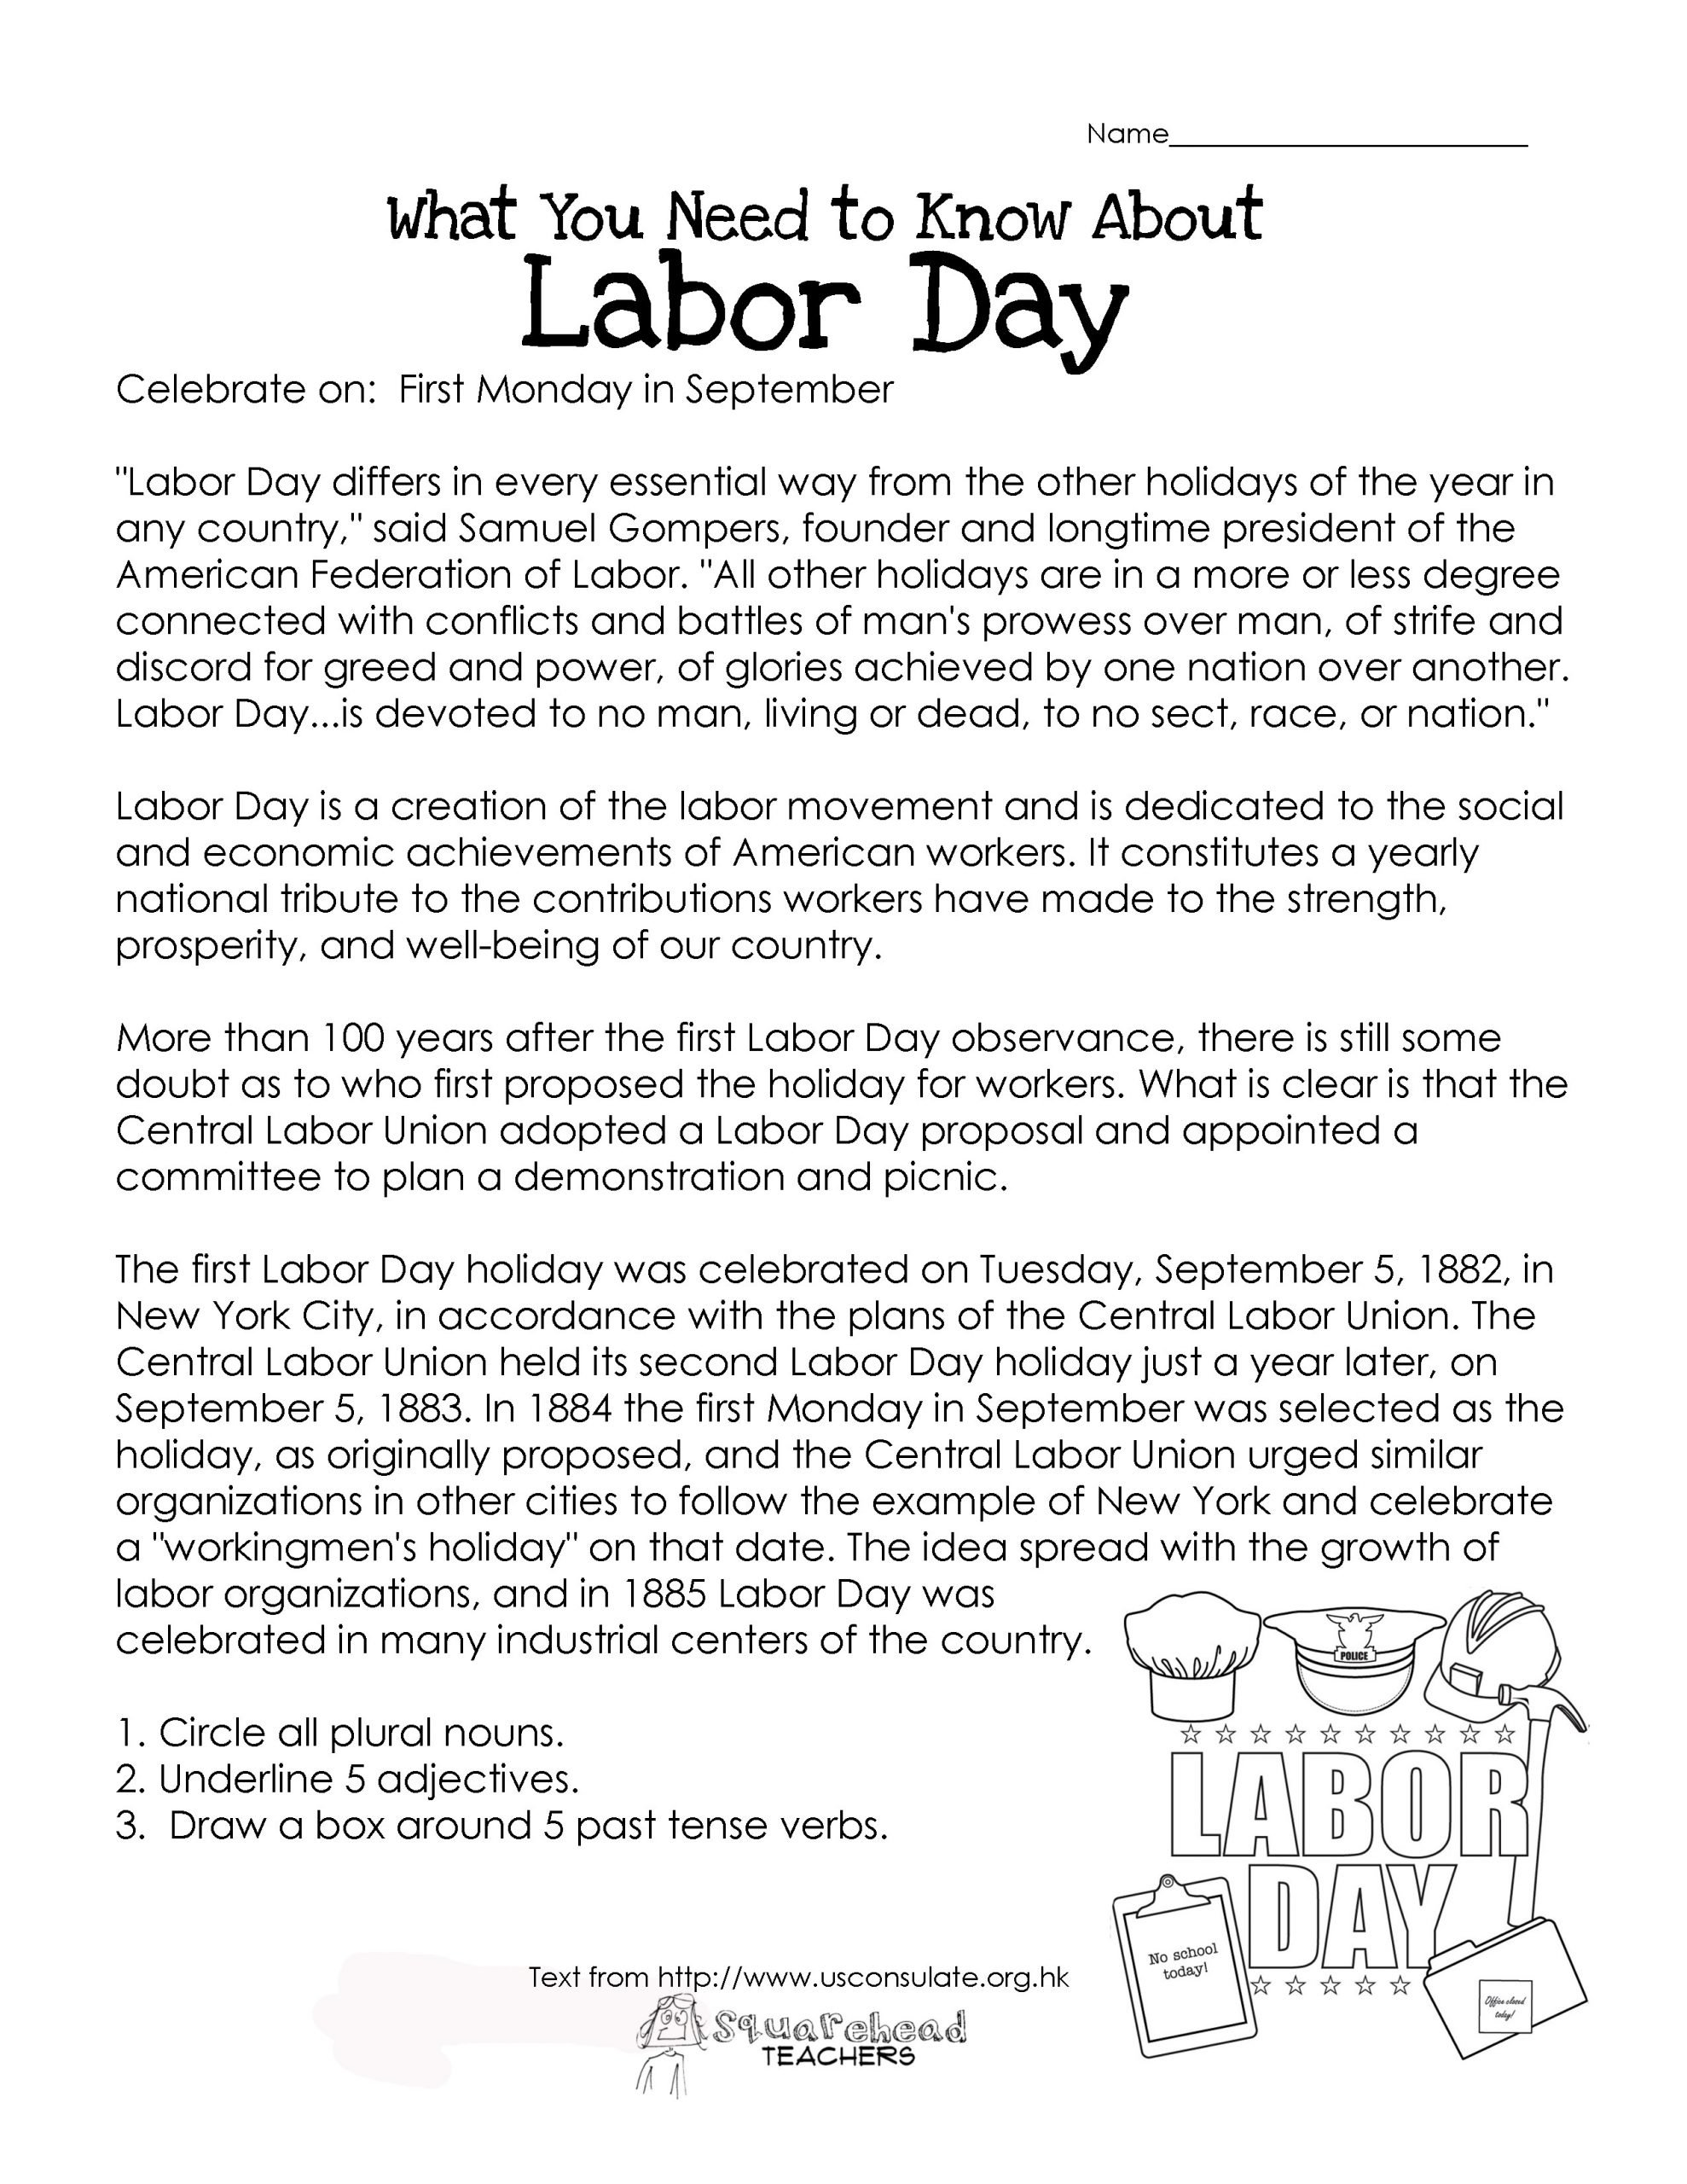 Memorial Day Worksheets Free Labor Day What You Need to Know Free Worksheet